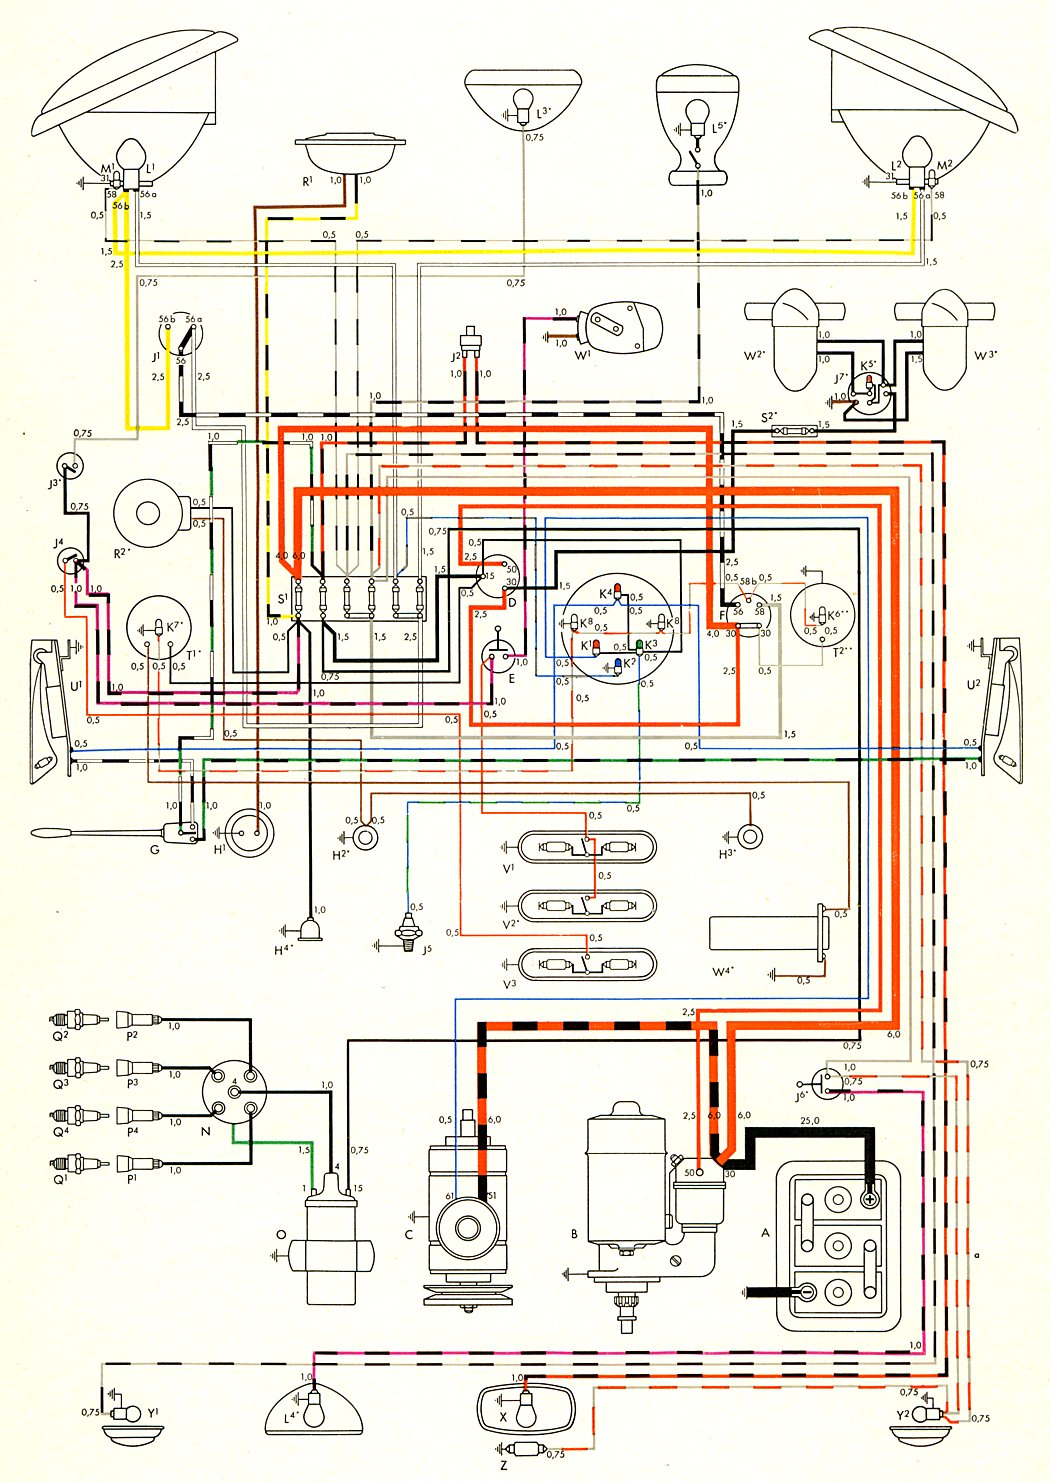 thesamba.com :: type 2 wiring diagrams  thesamba.com